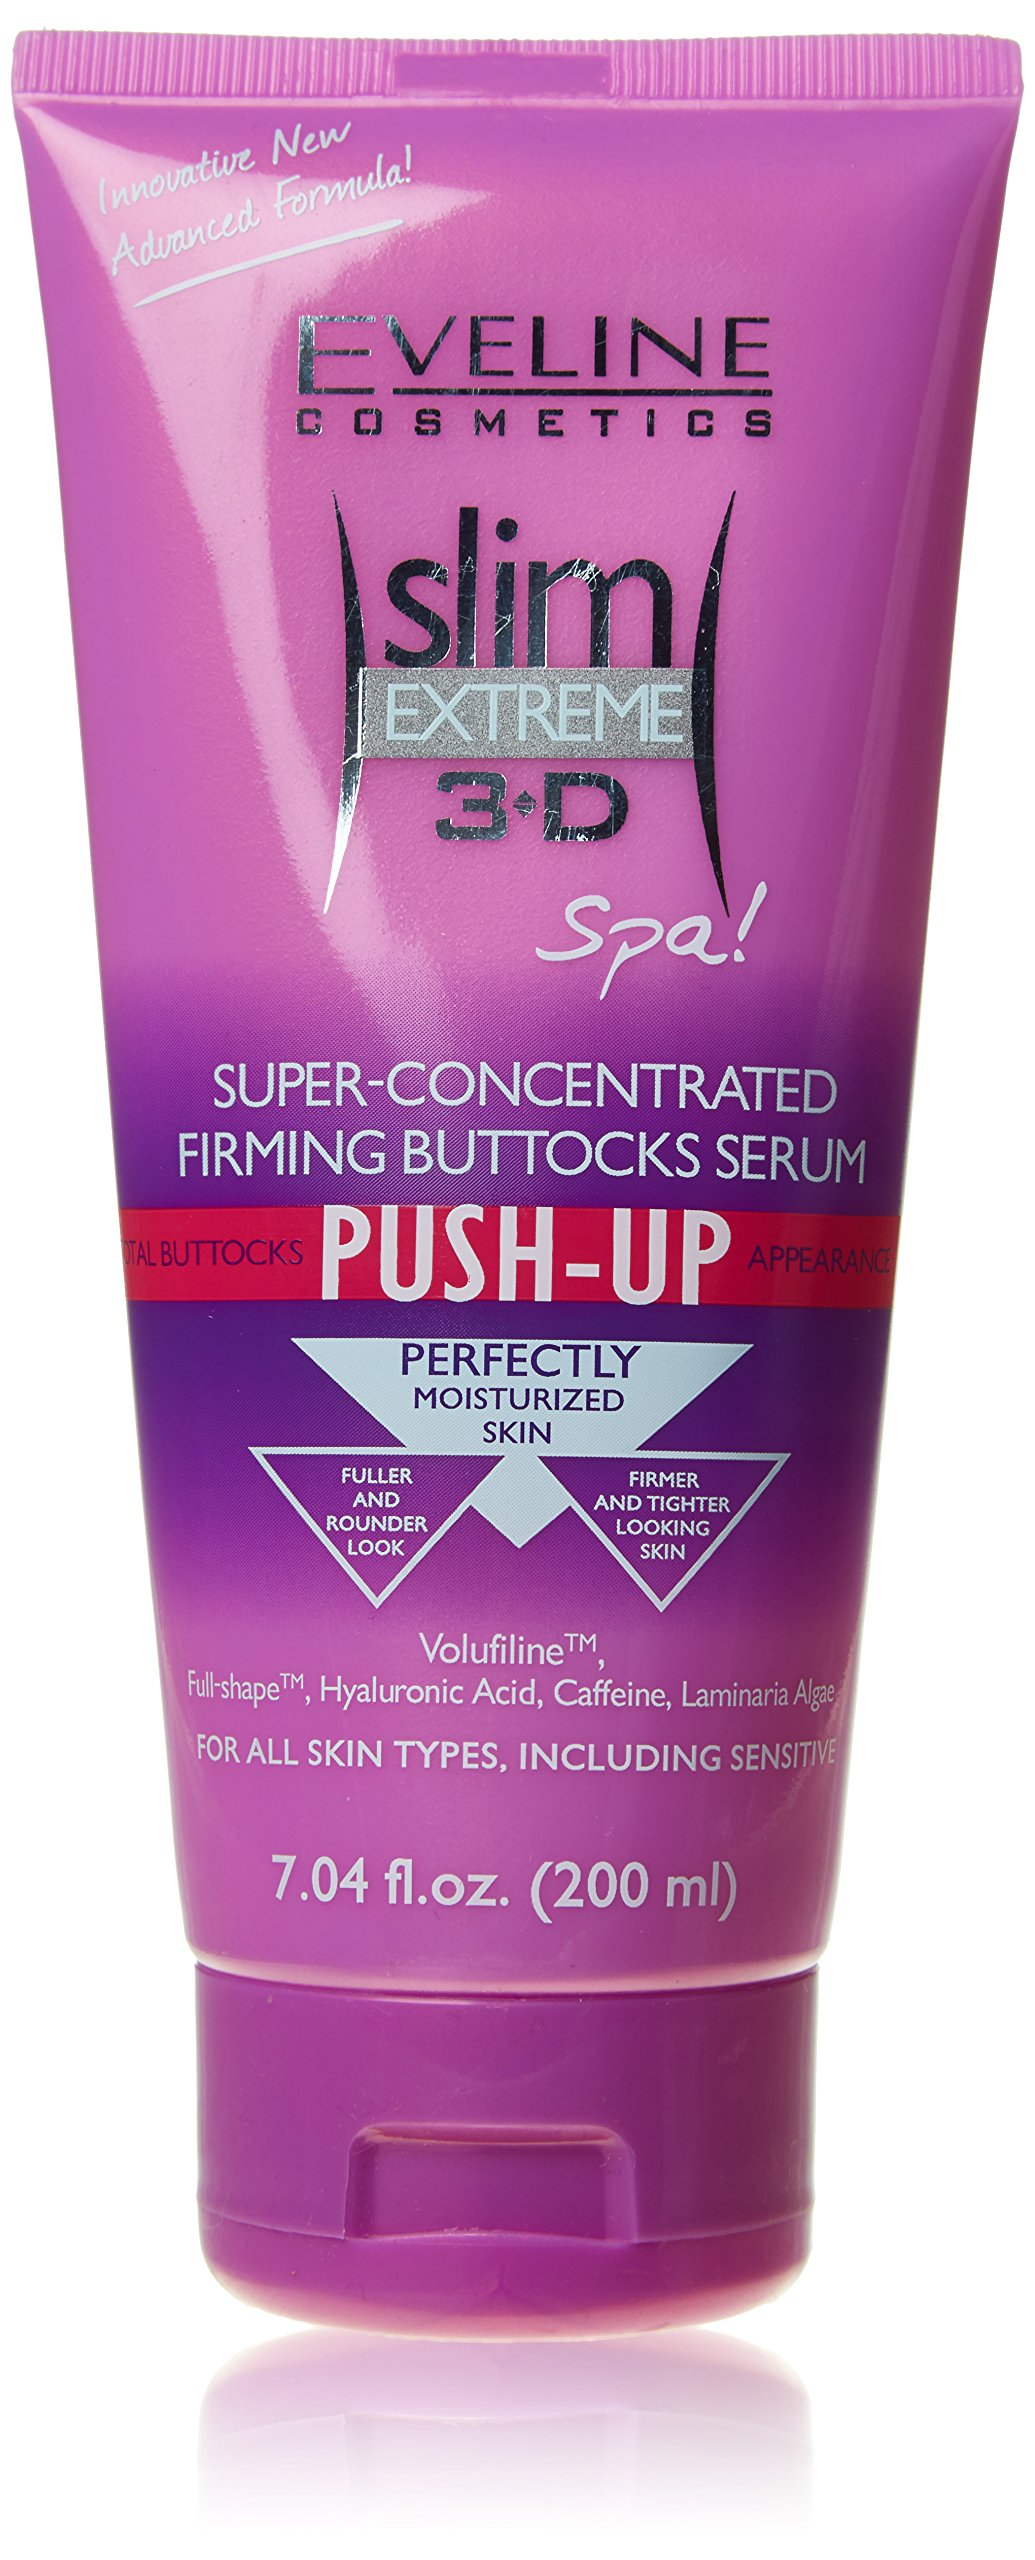 Slim Extreme 3d Super-concentrated Serum Shaping Buttocks